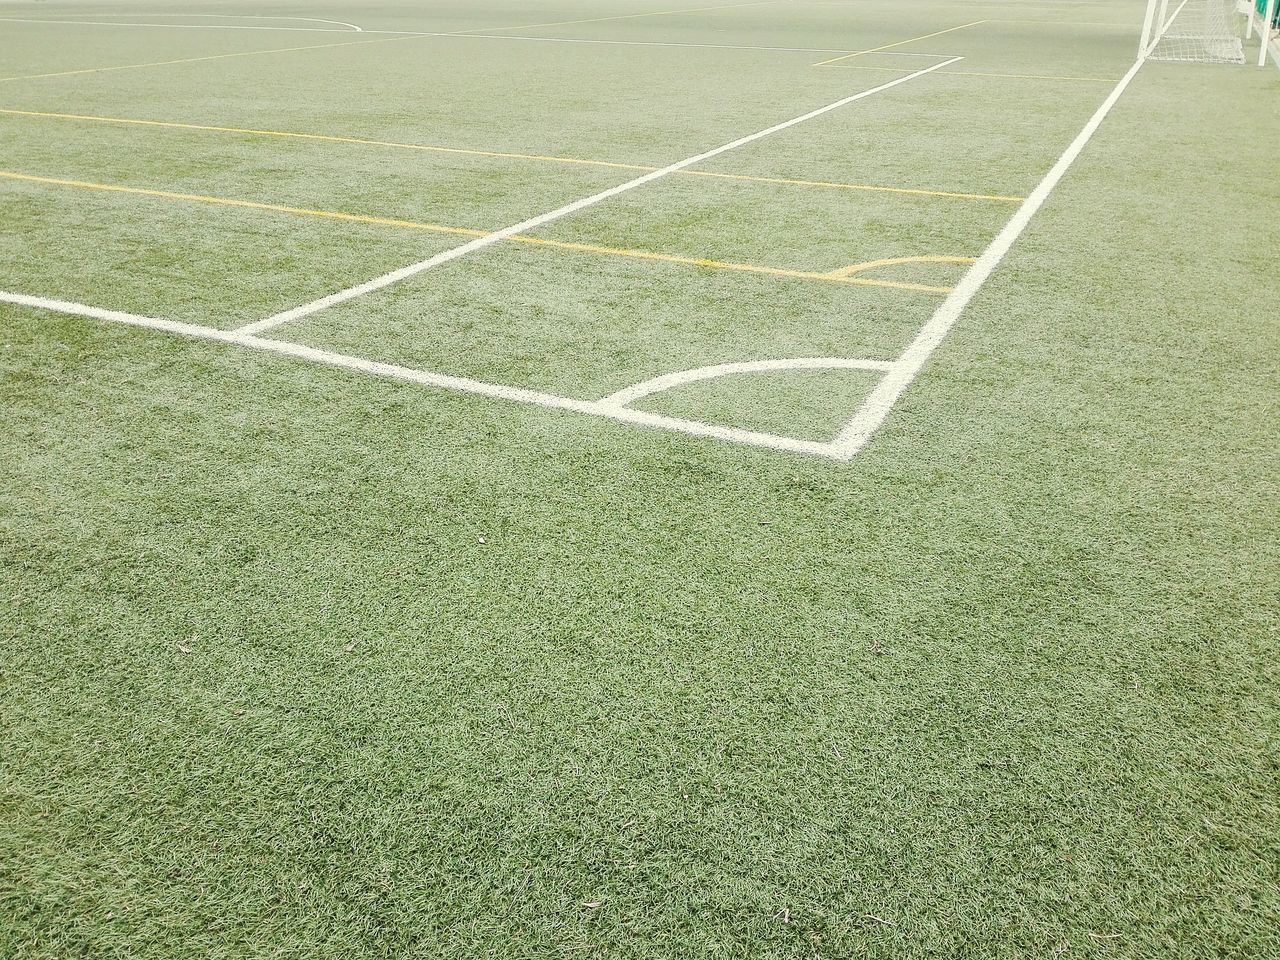 Day No People Outdoors My Phone Camera Soccer Field Eyeem Photography Asus Zenfone Photography Lines And Shapes Green Grass Area Grassfield